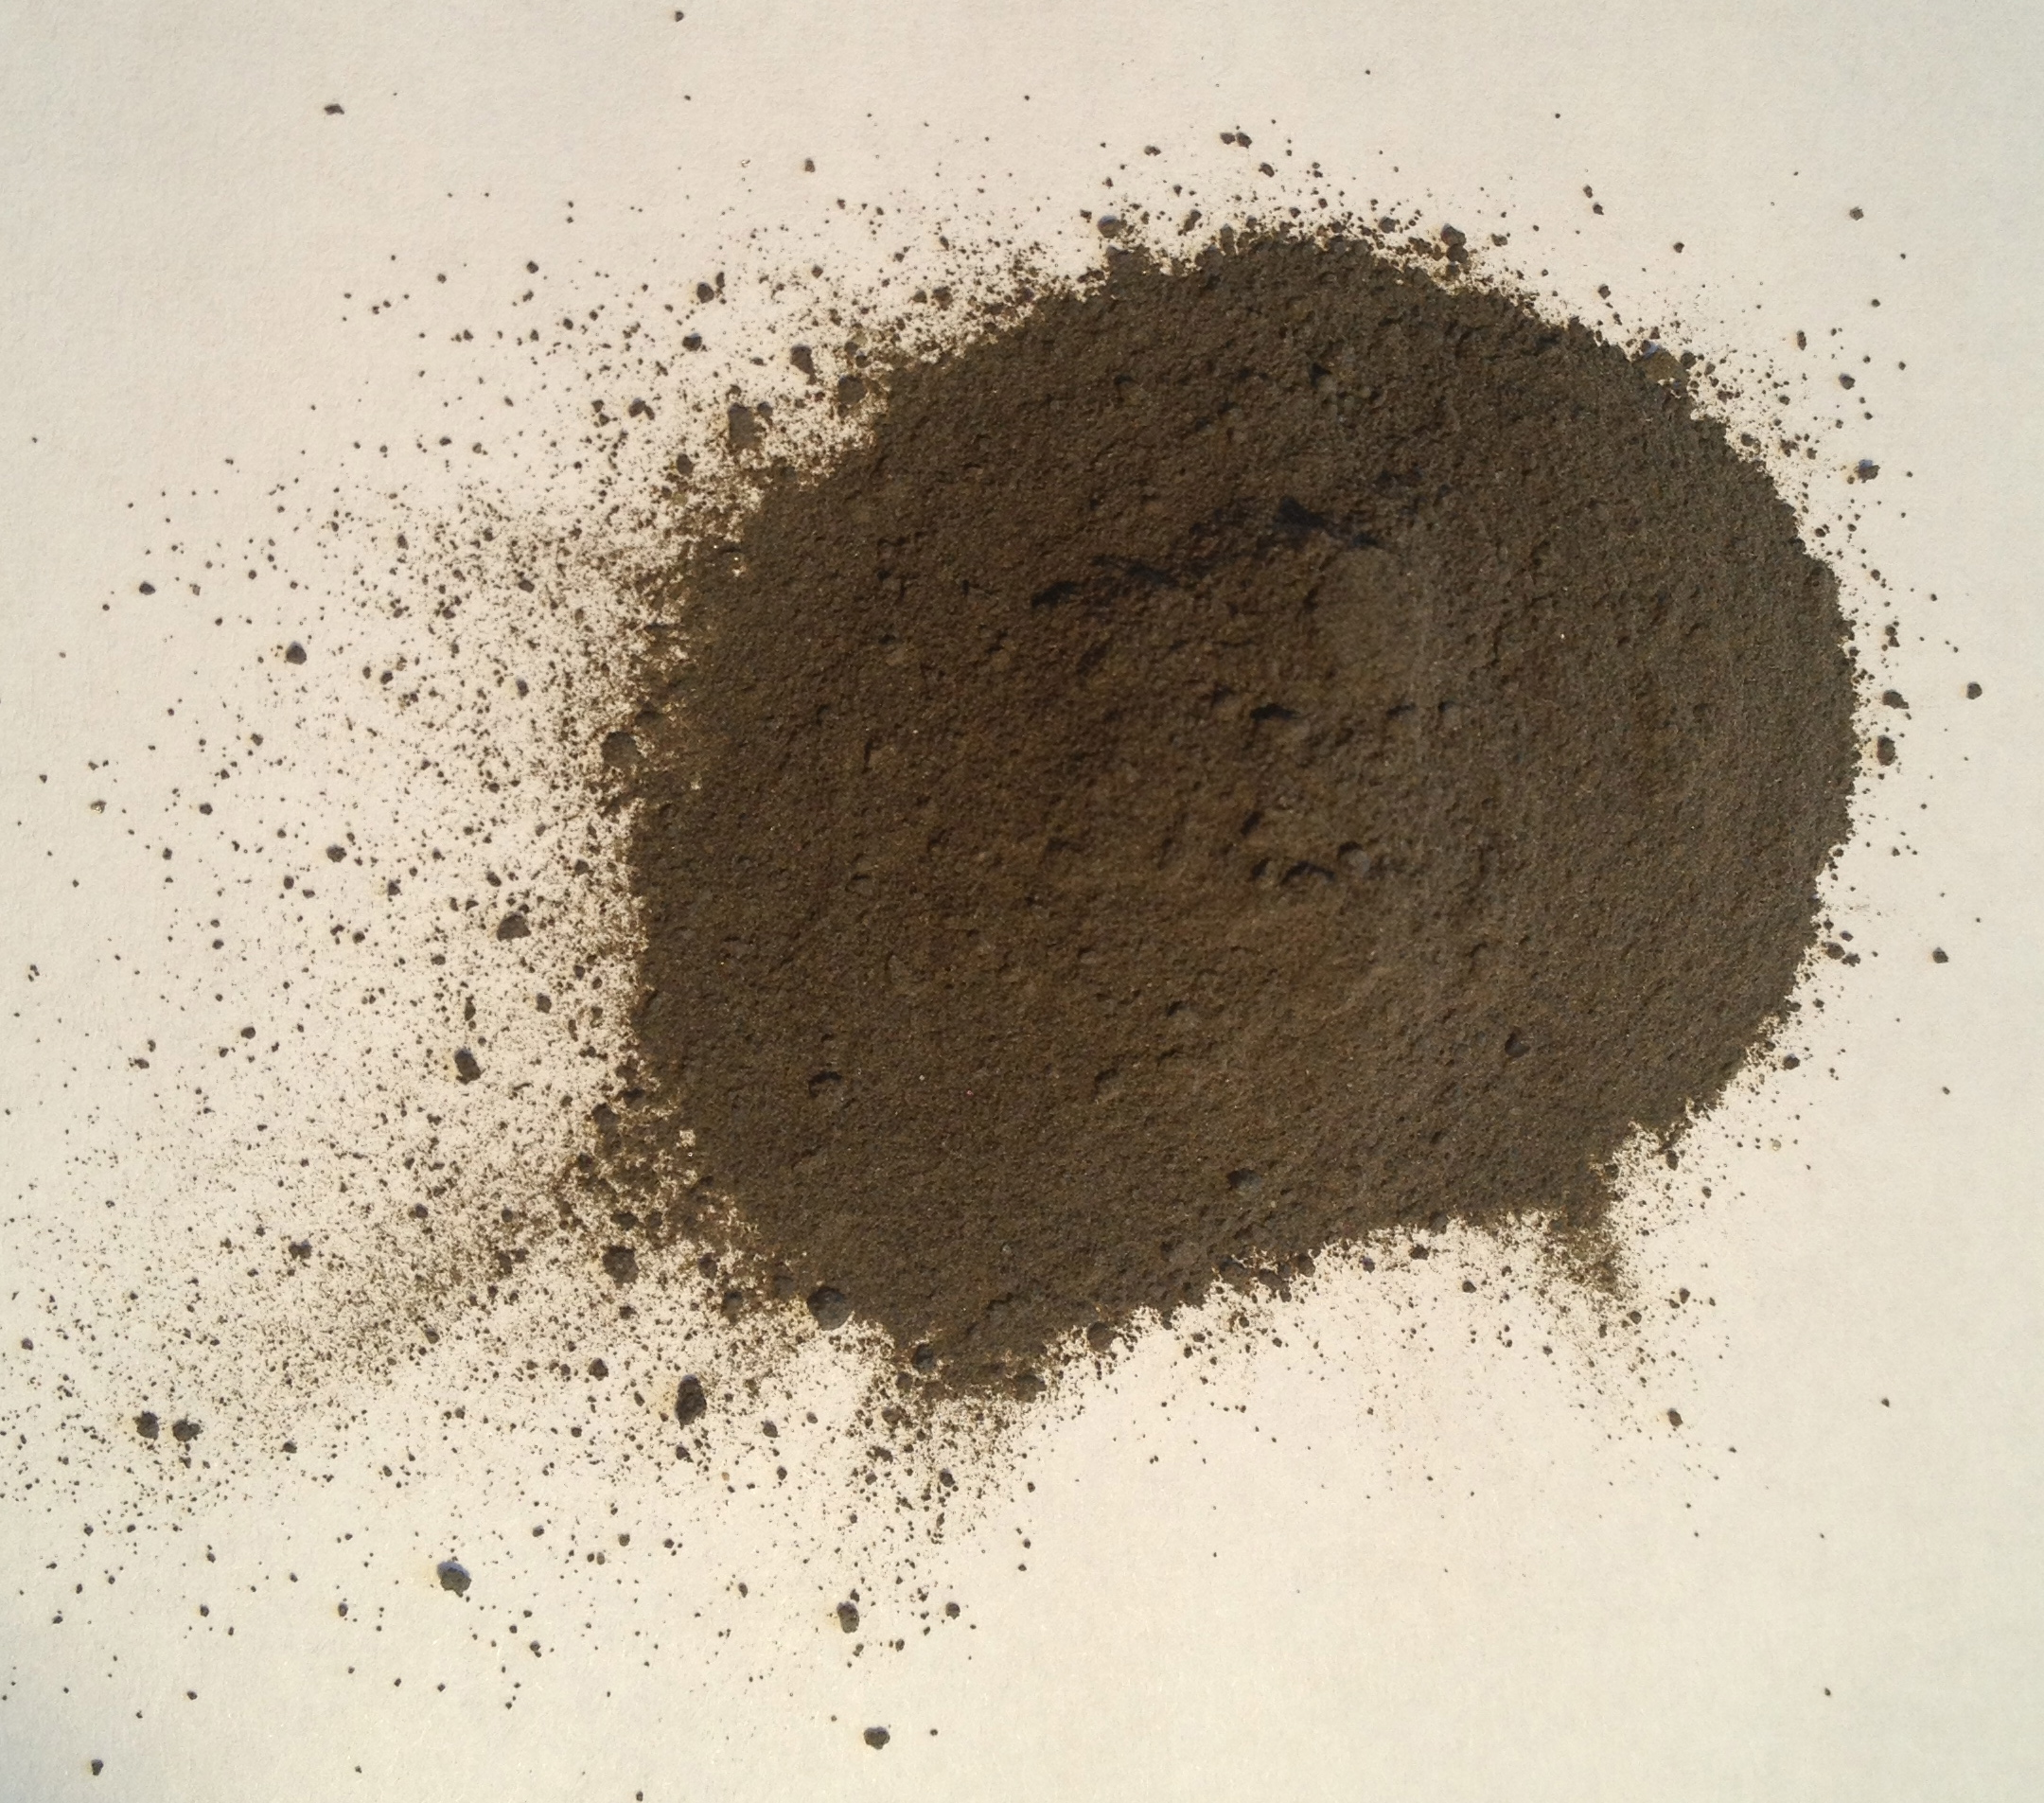 Silt is more nutrient rich than sand.